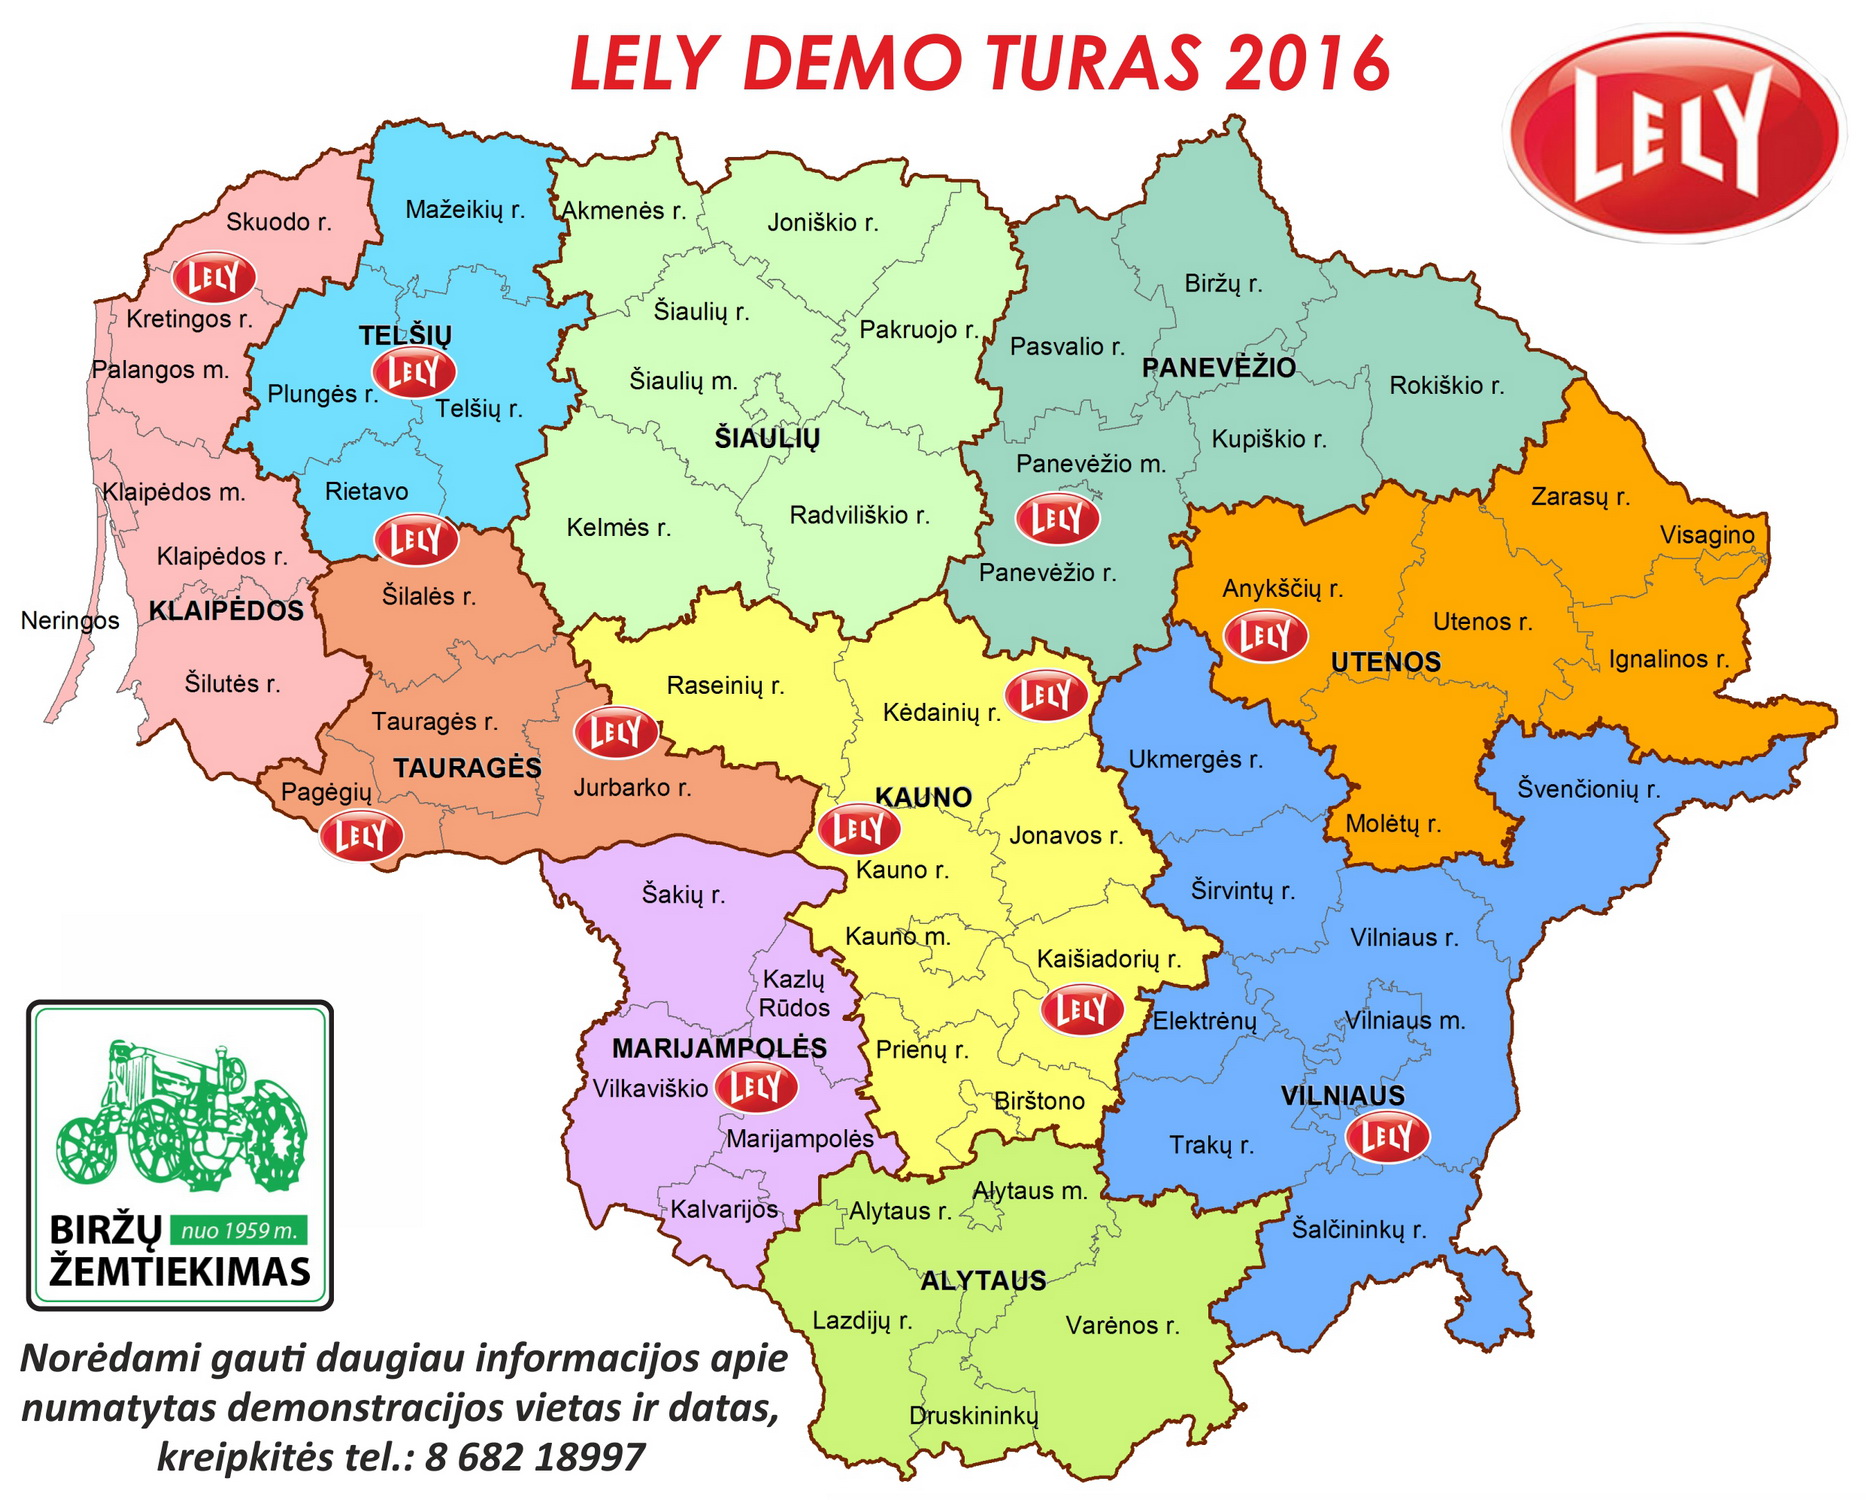 LELY DEMO TURAS 2016